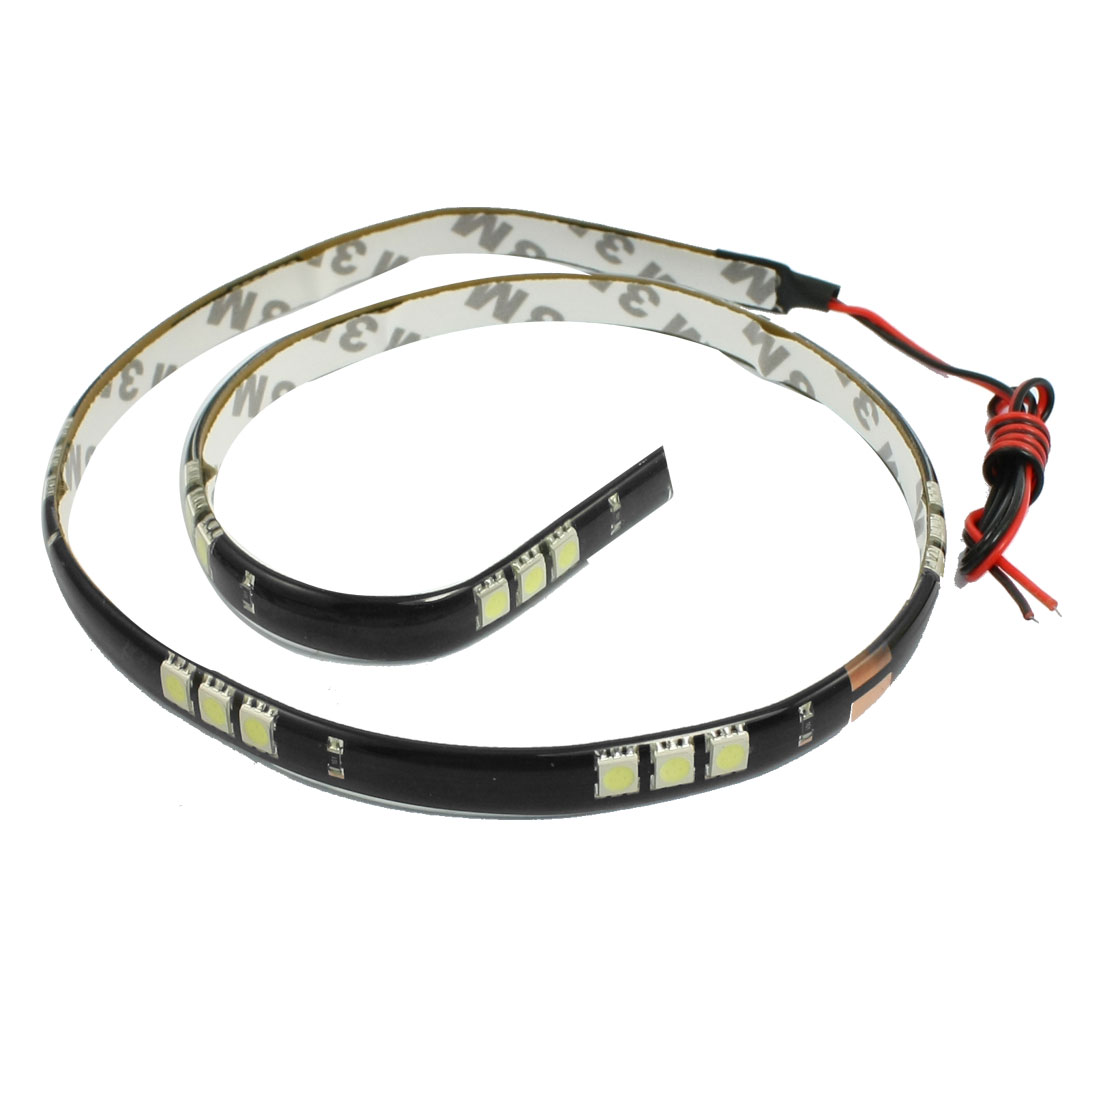 White 60CM 30LED 12V Car 5050 SMD Top Emitting Glow Flexible LED Strip Light internal